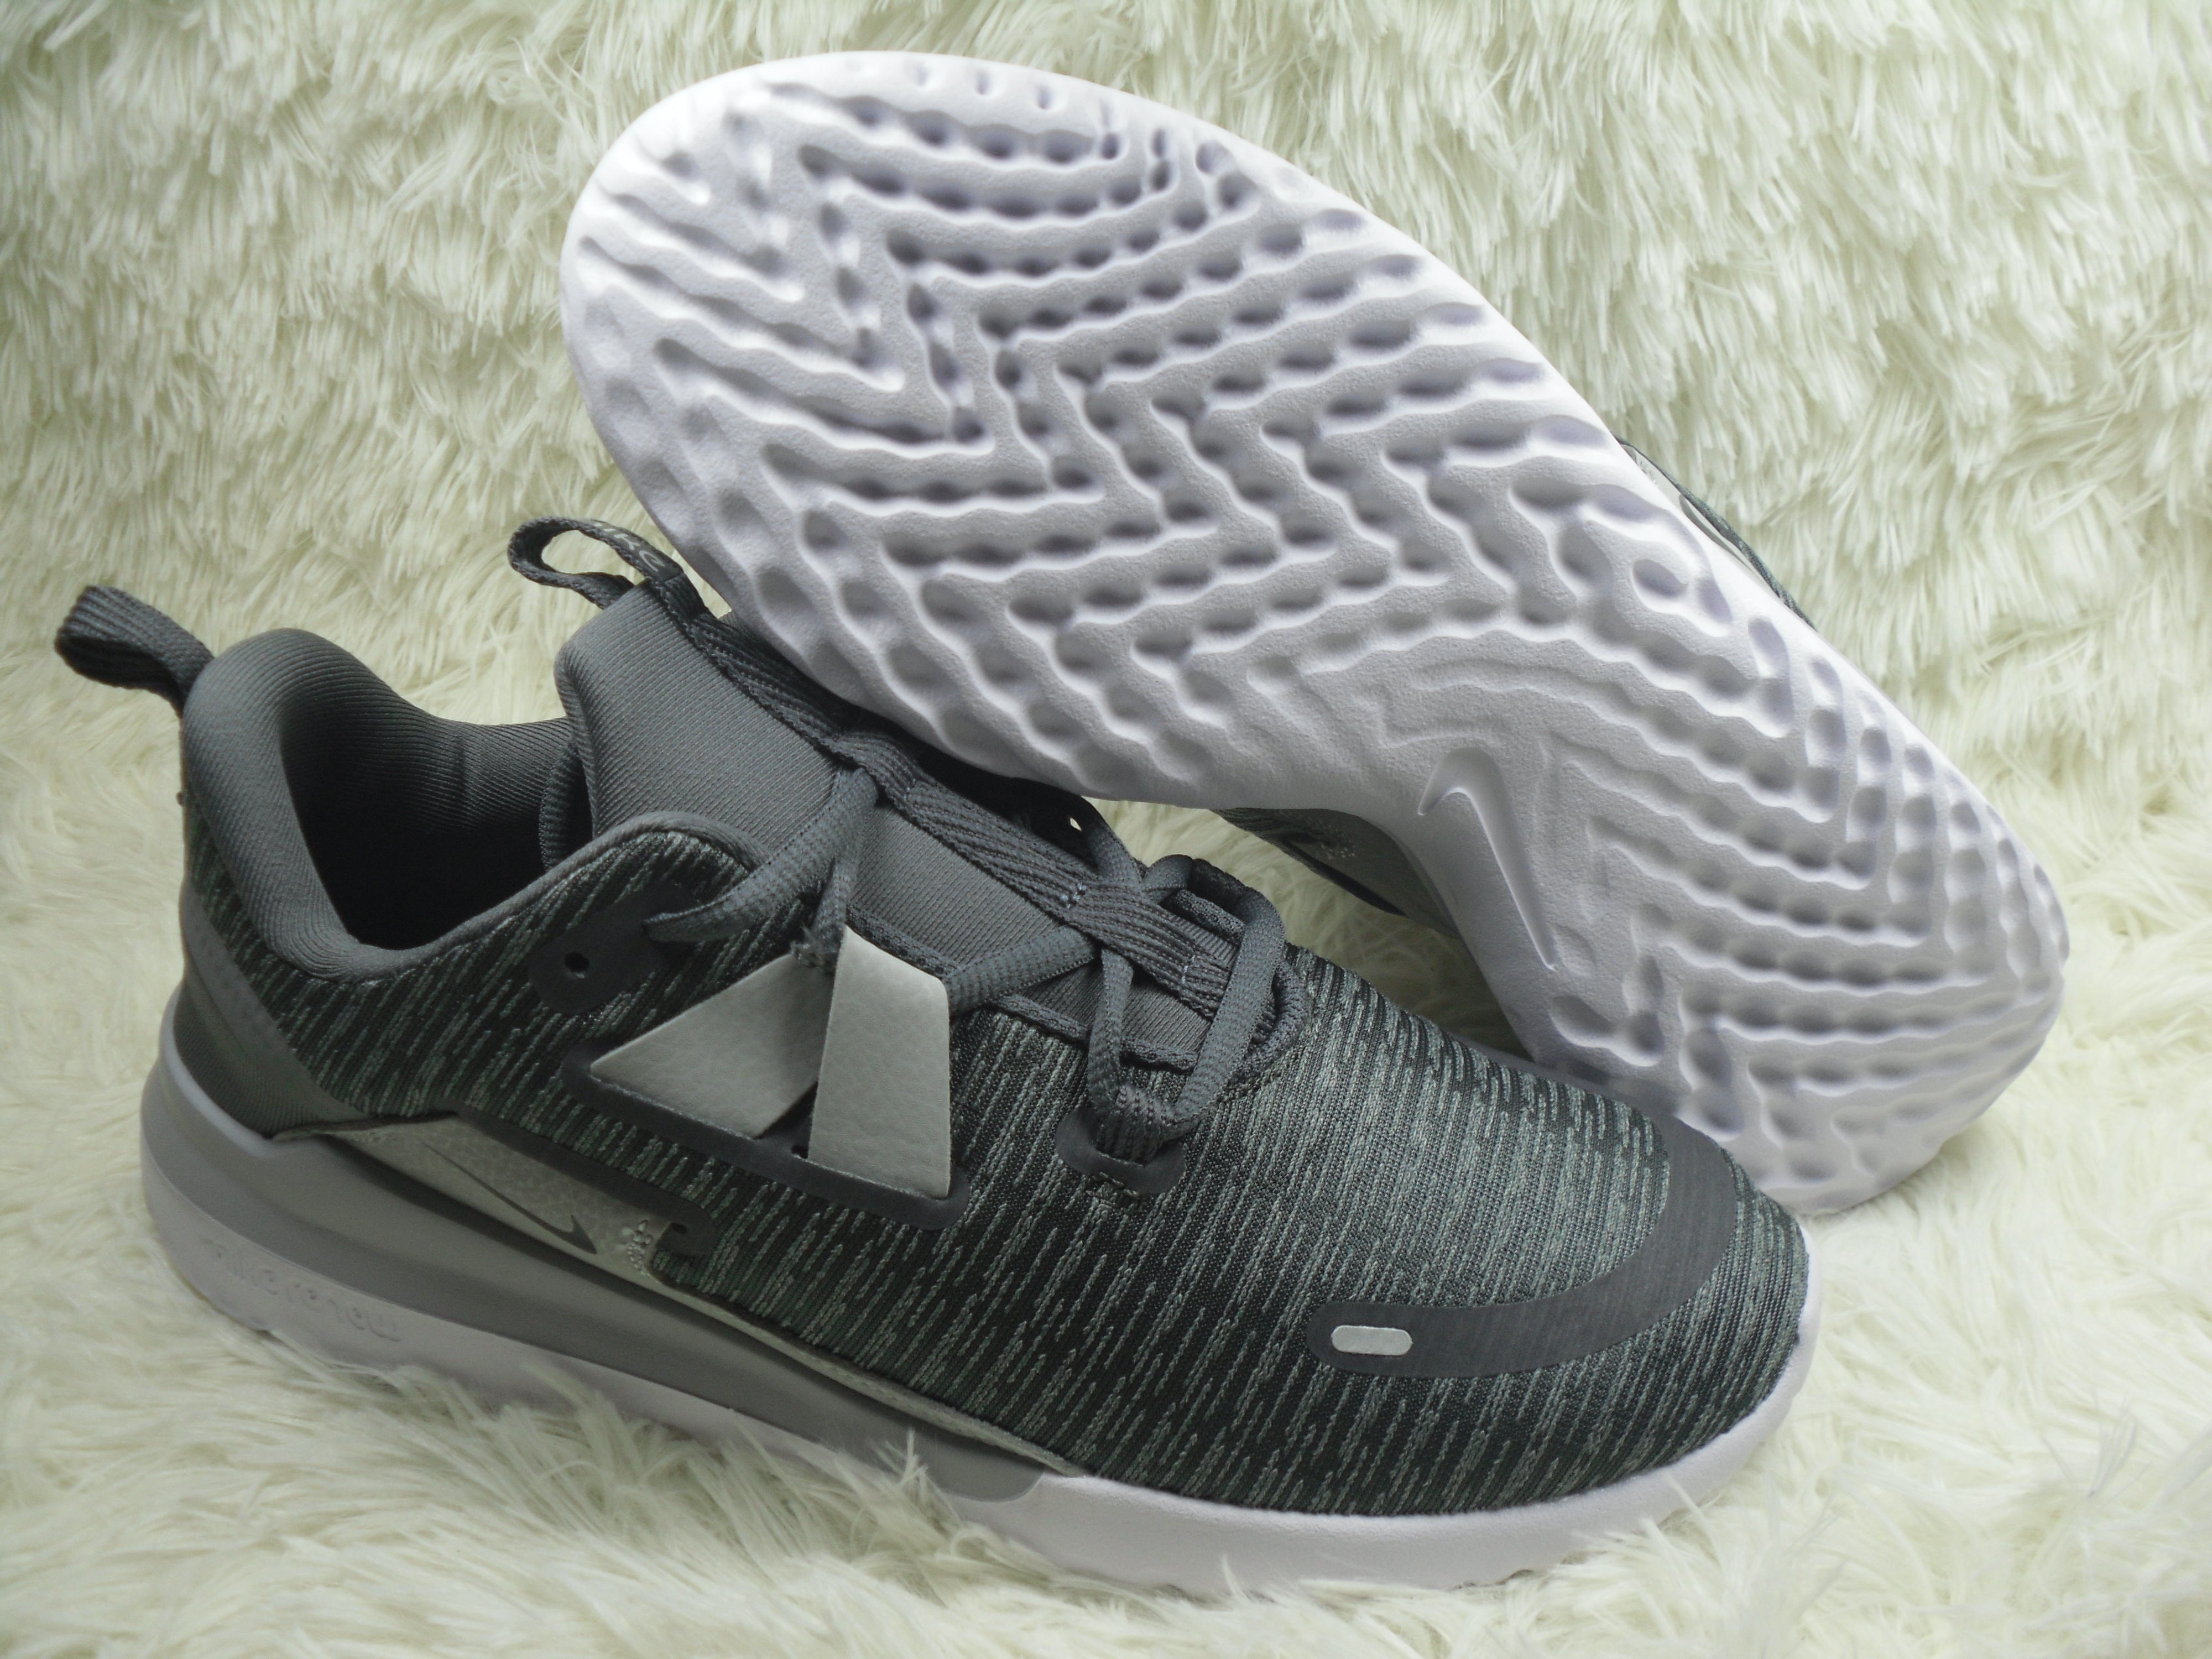 Nike Renew Arena Flyknit Black Grey Running Shoes